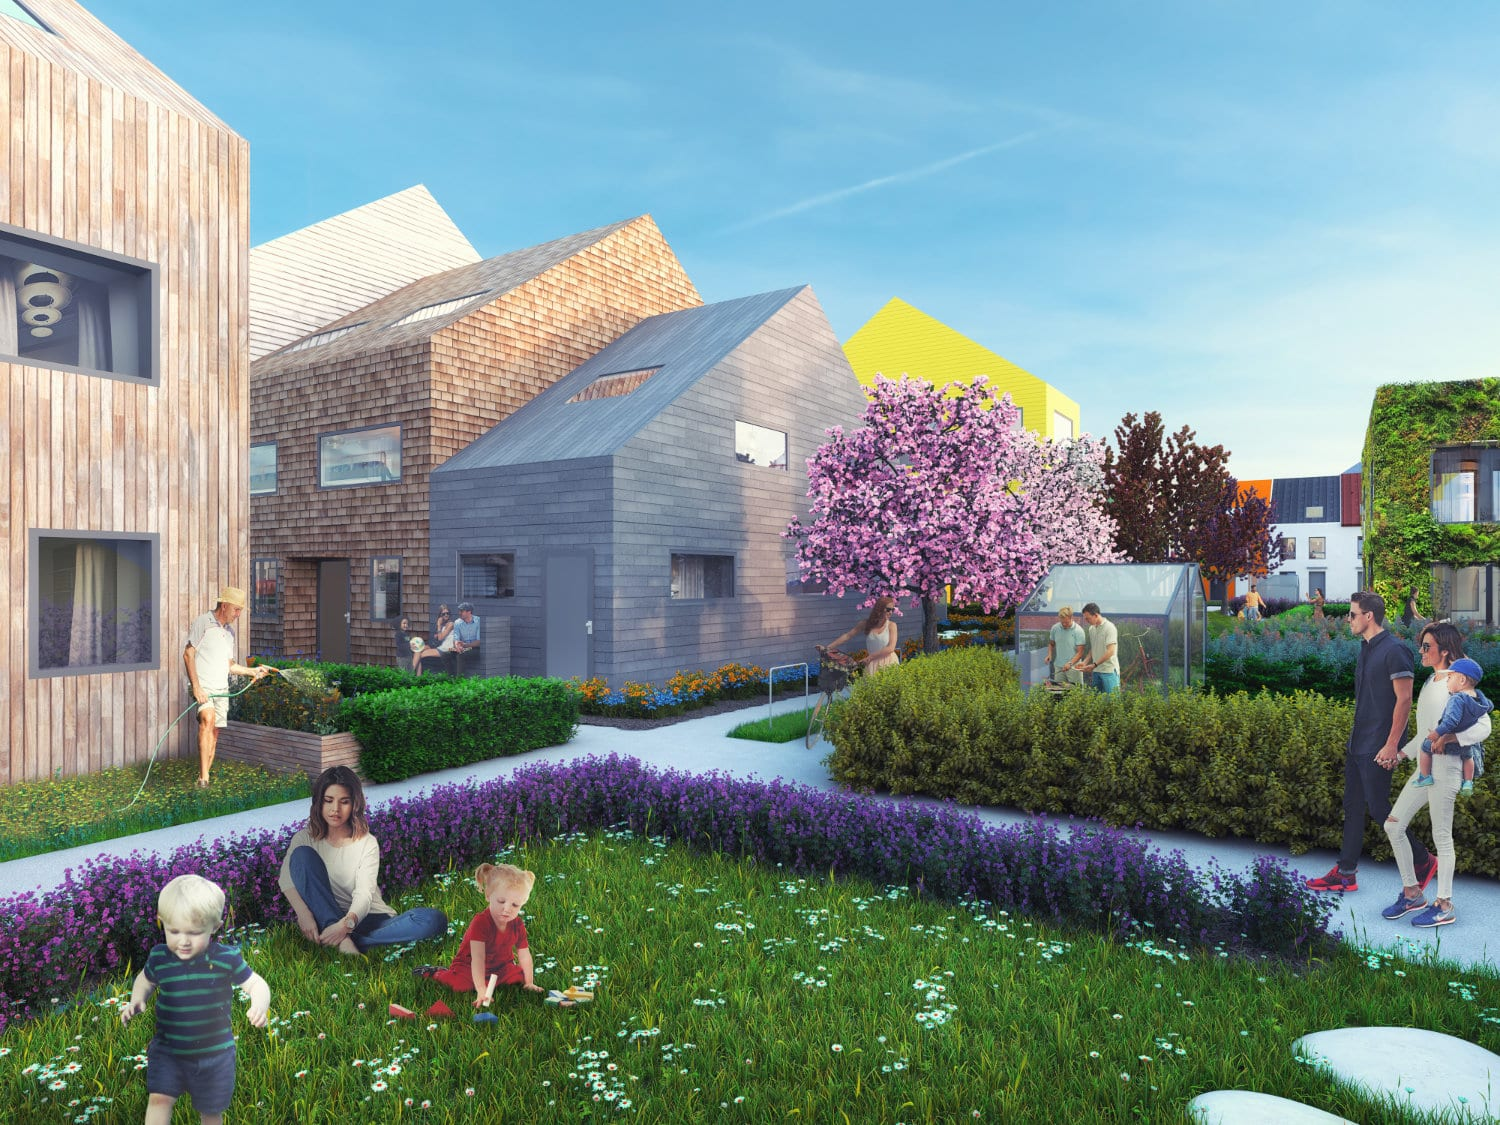 Traumhaus Funari takes a new approach to suburban development by combining affordability, individuality, and diversity